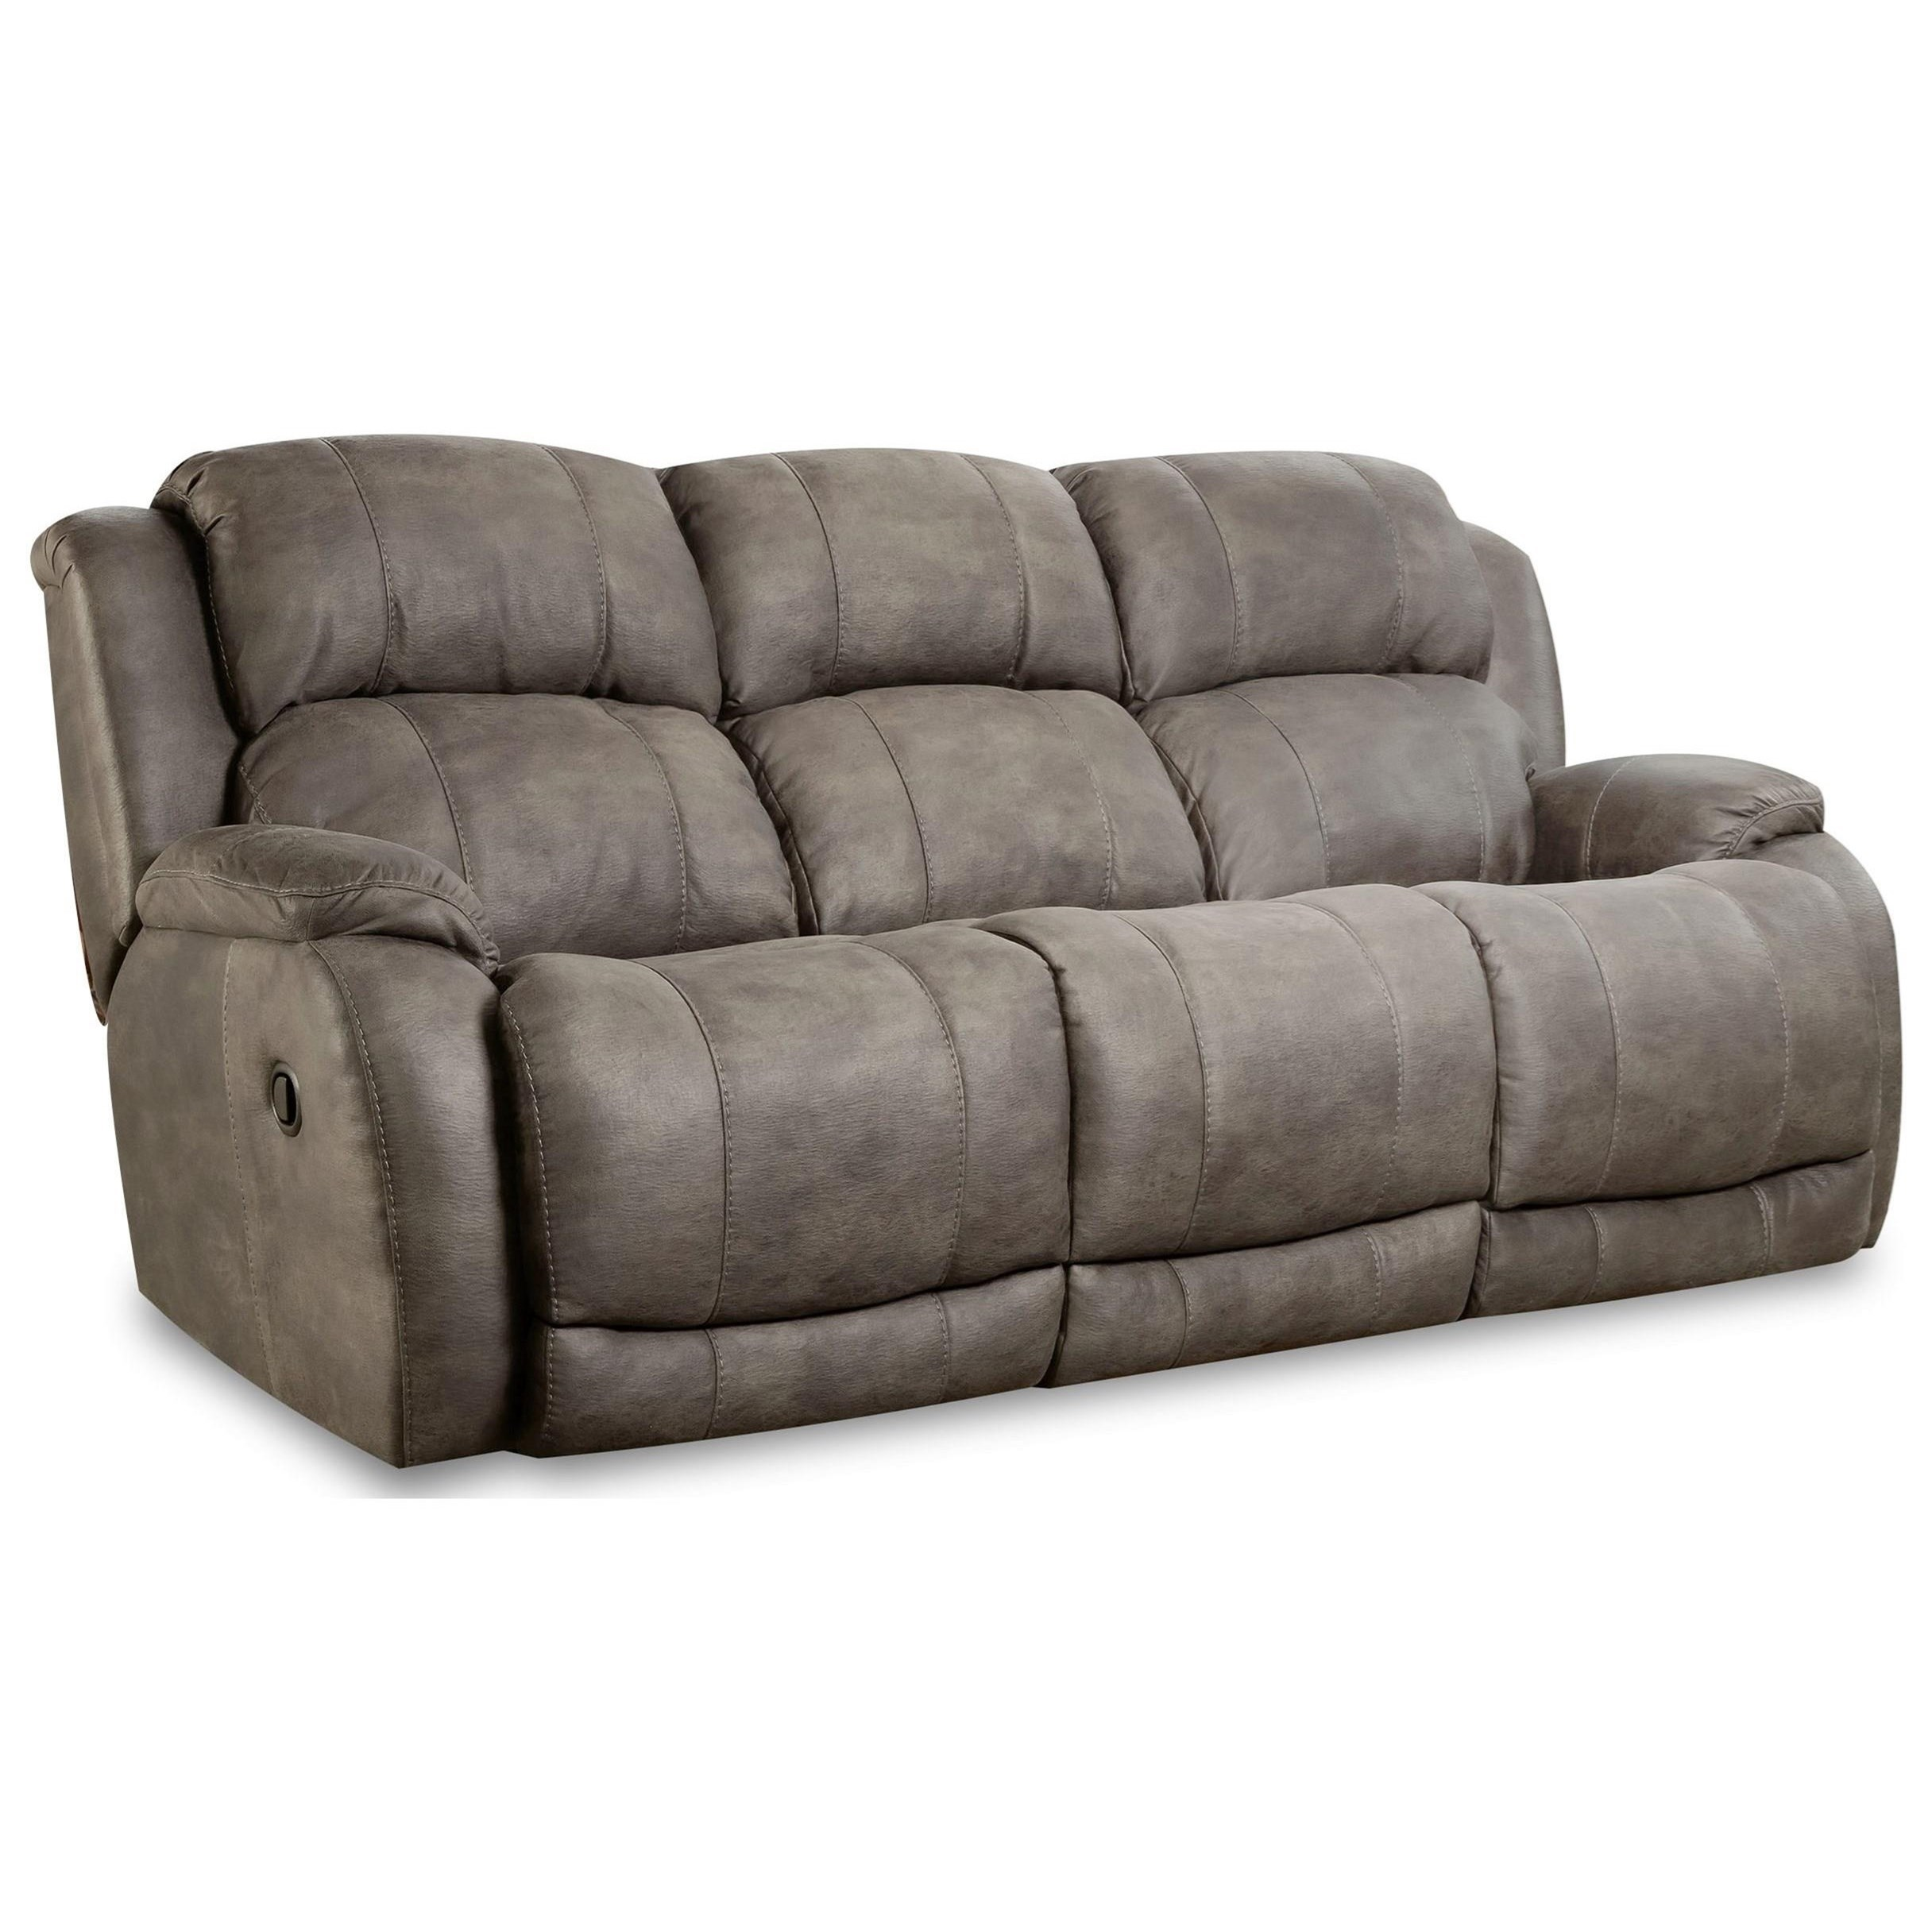 Denali Dual Reclining Sofa by HomeStretch at Turk Furniture